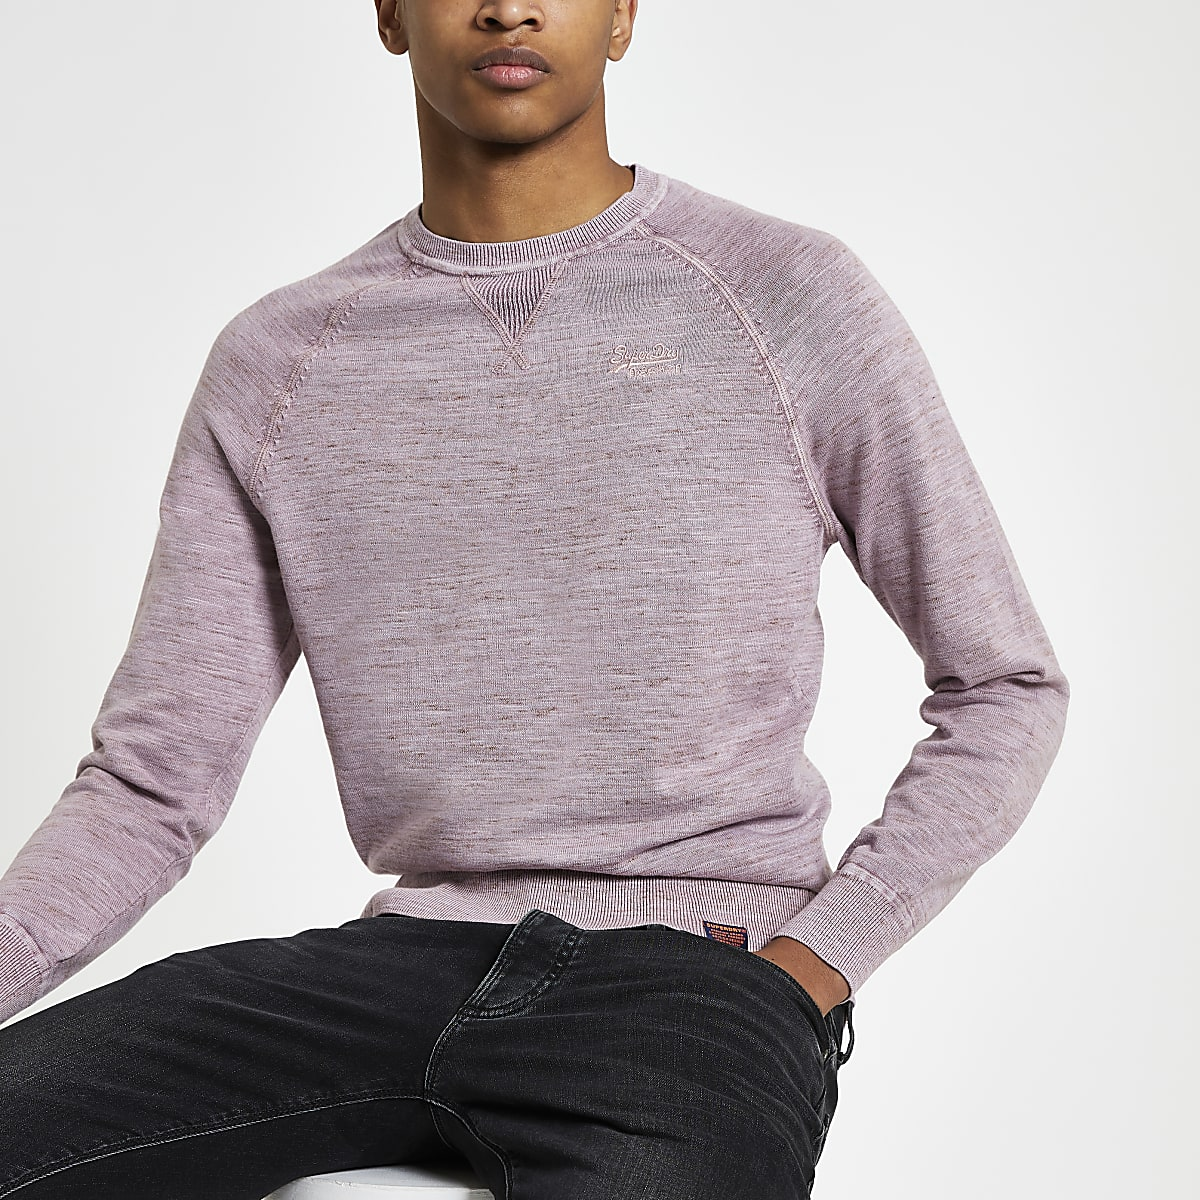 Superdry pink knit crew neck sweatshirt